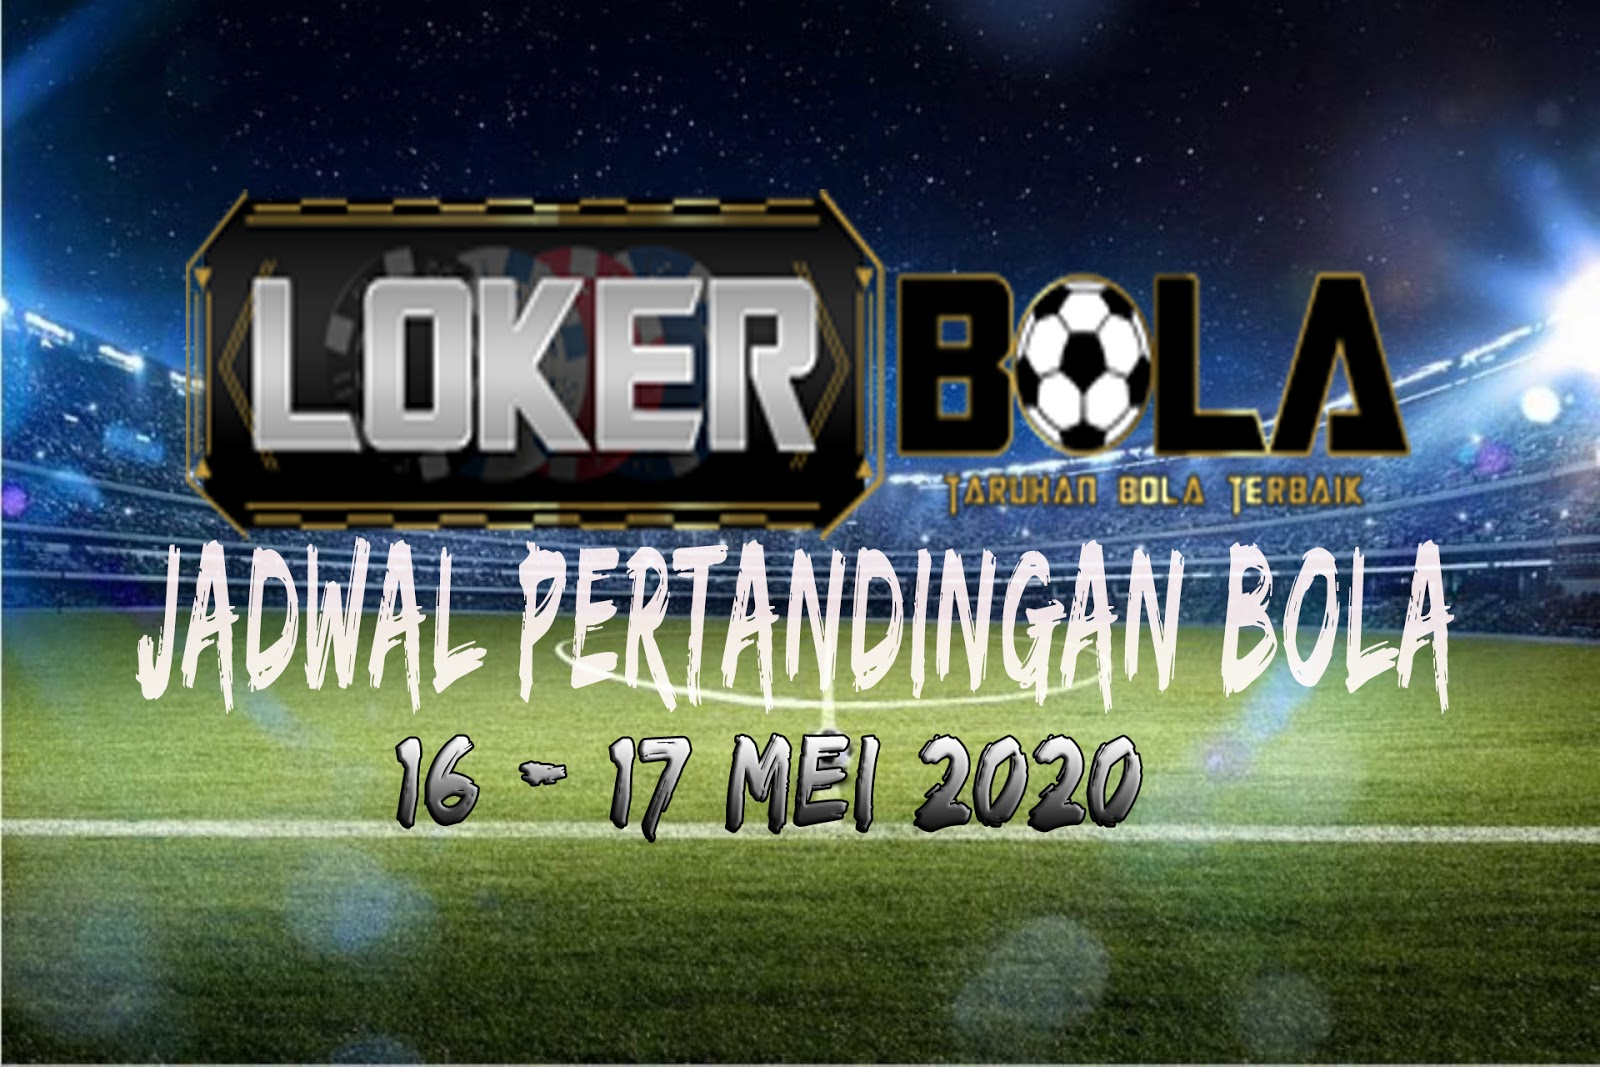 JADWAL PERTANDINGAN BOLA 16 – 17 May 2020